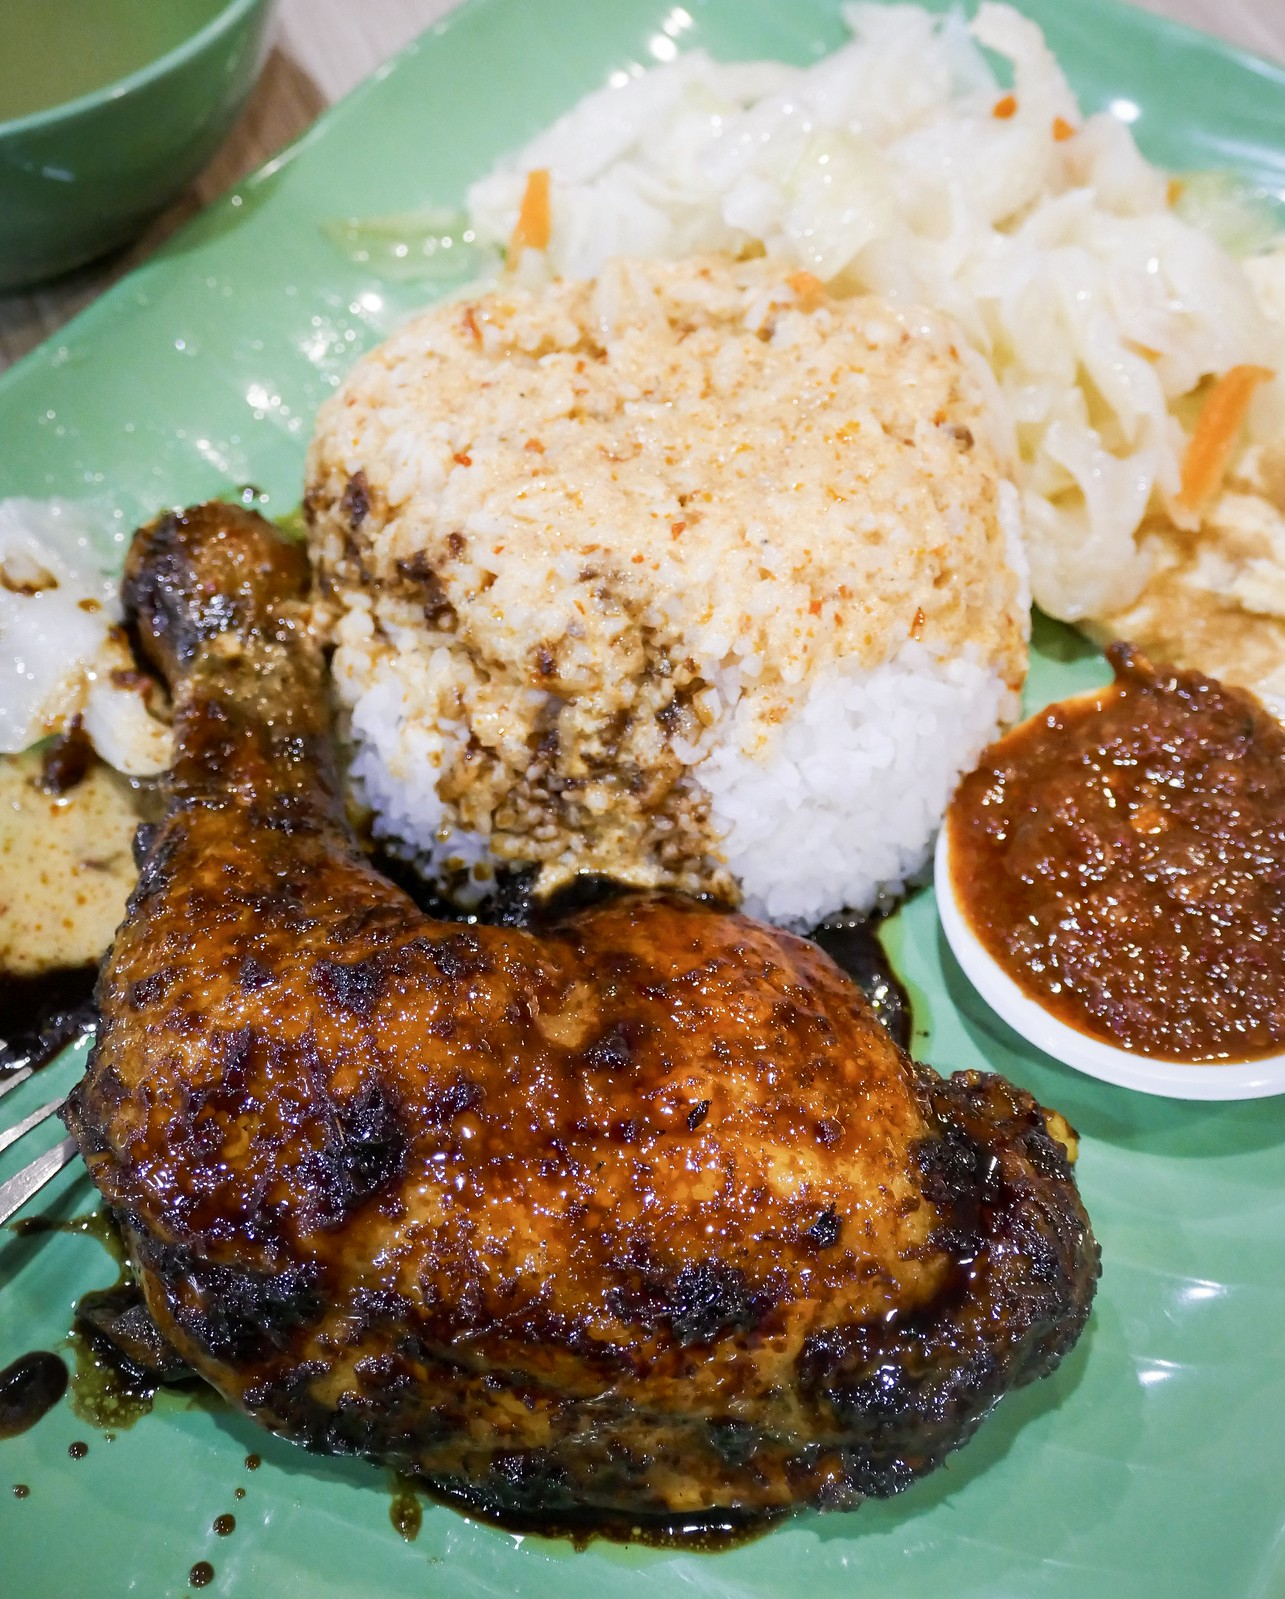 Orchard Road: Indonesian BBQ